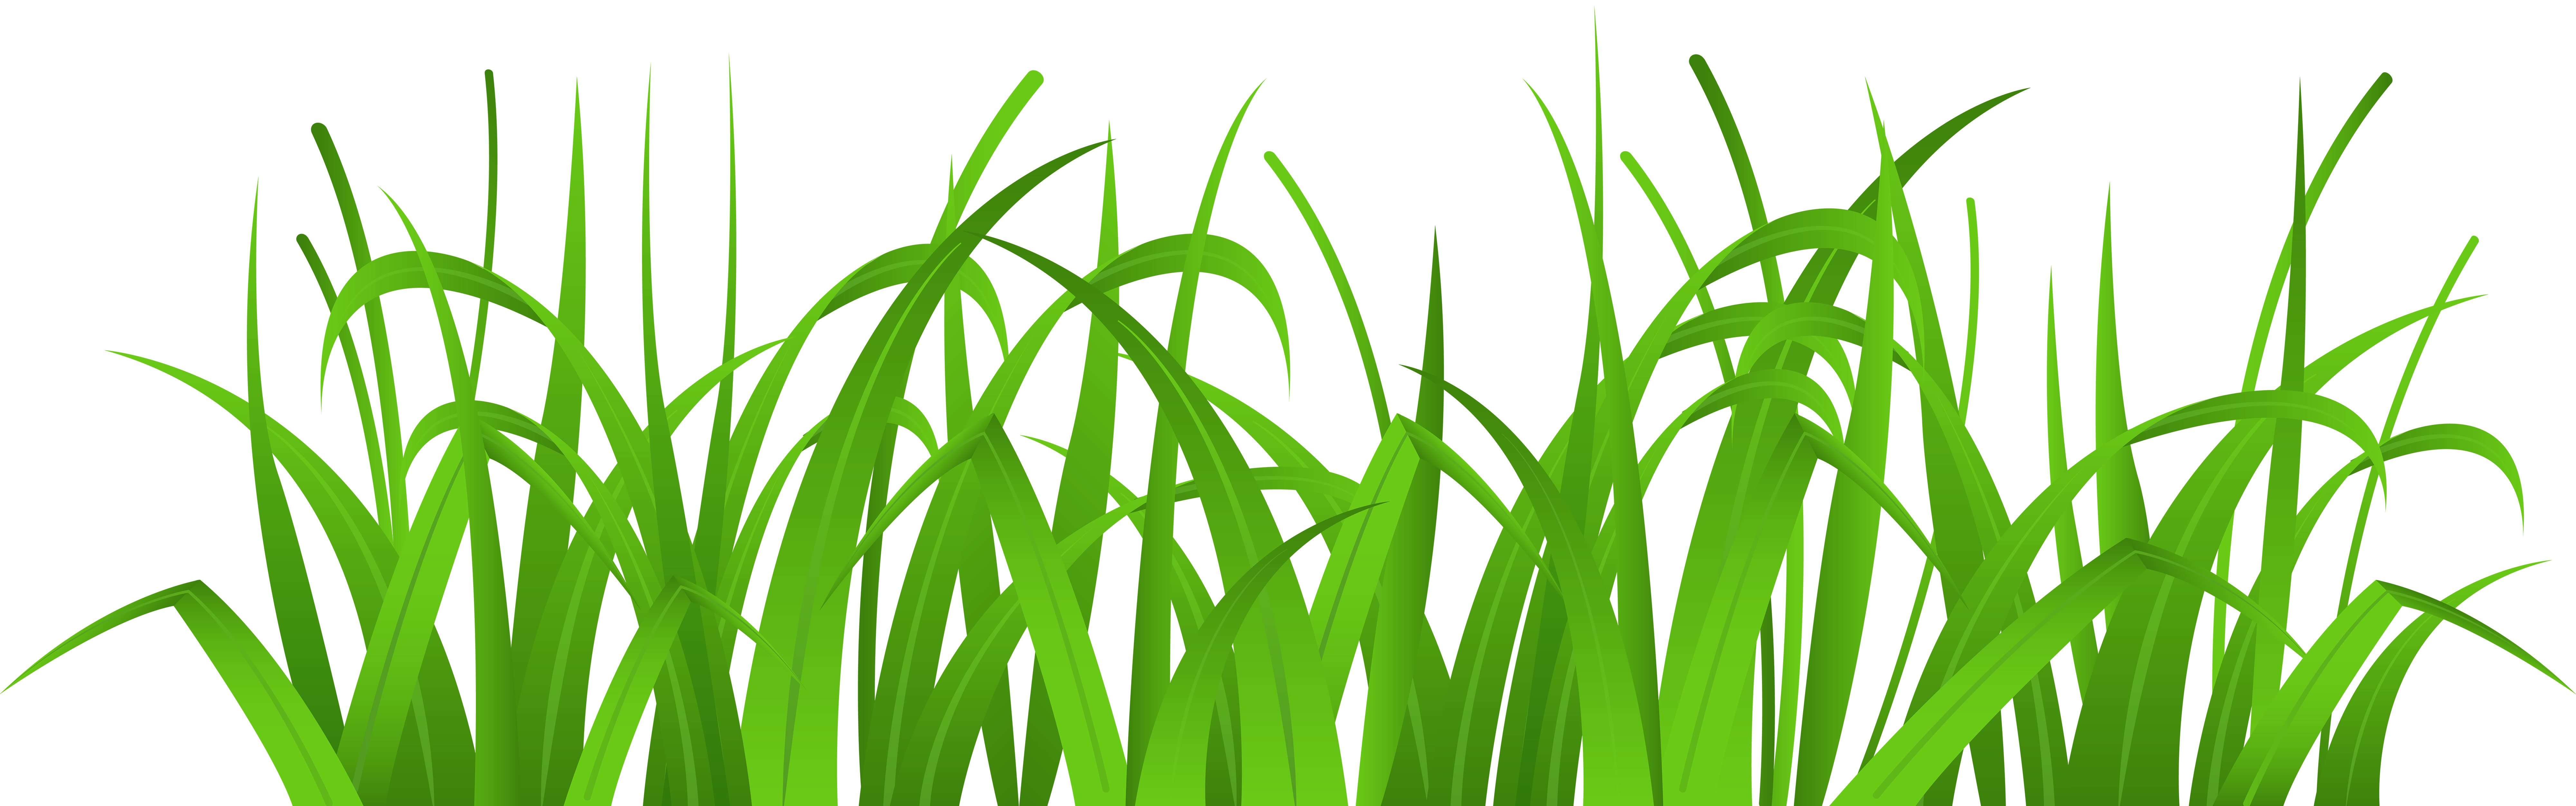 Gate clipart grass. Cover png clip art